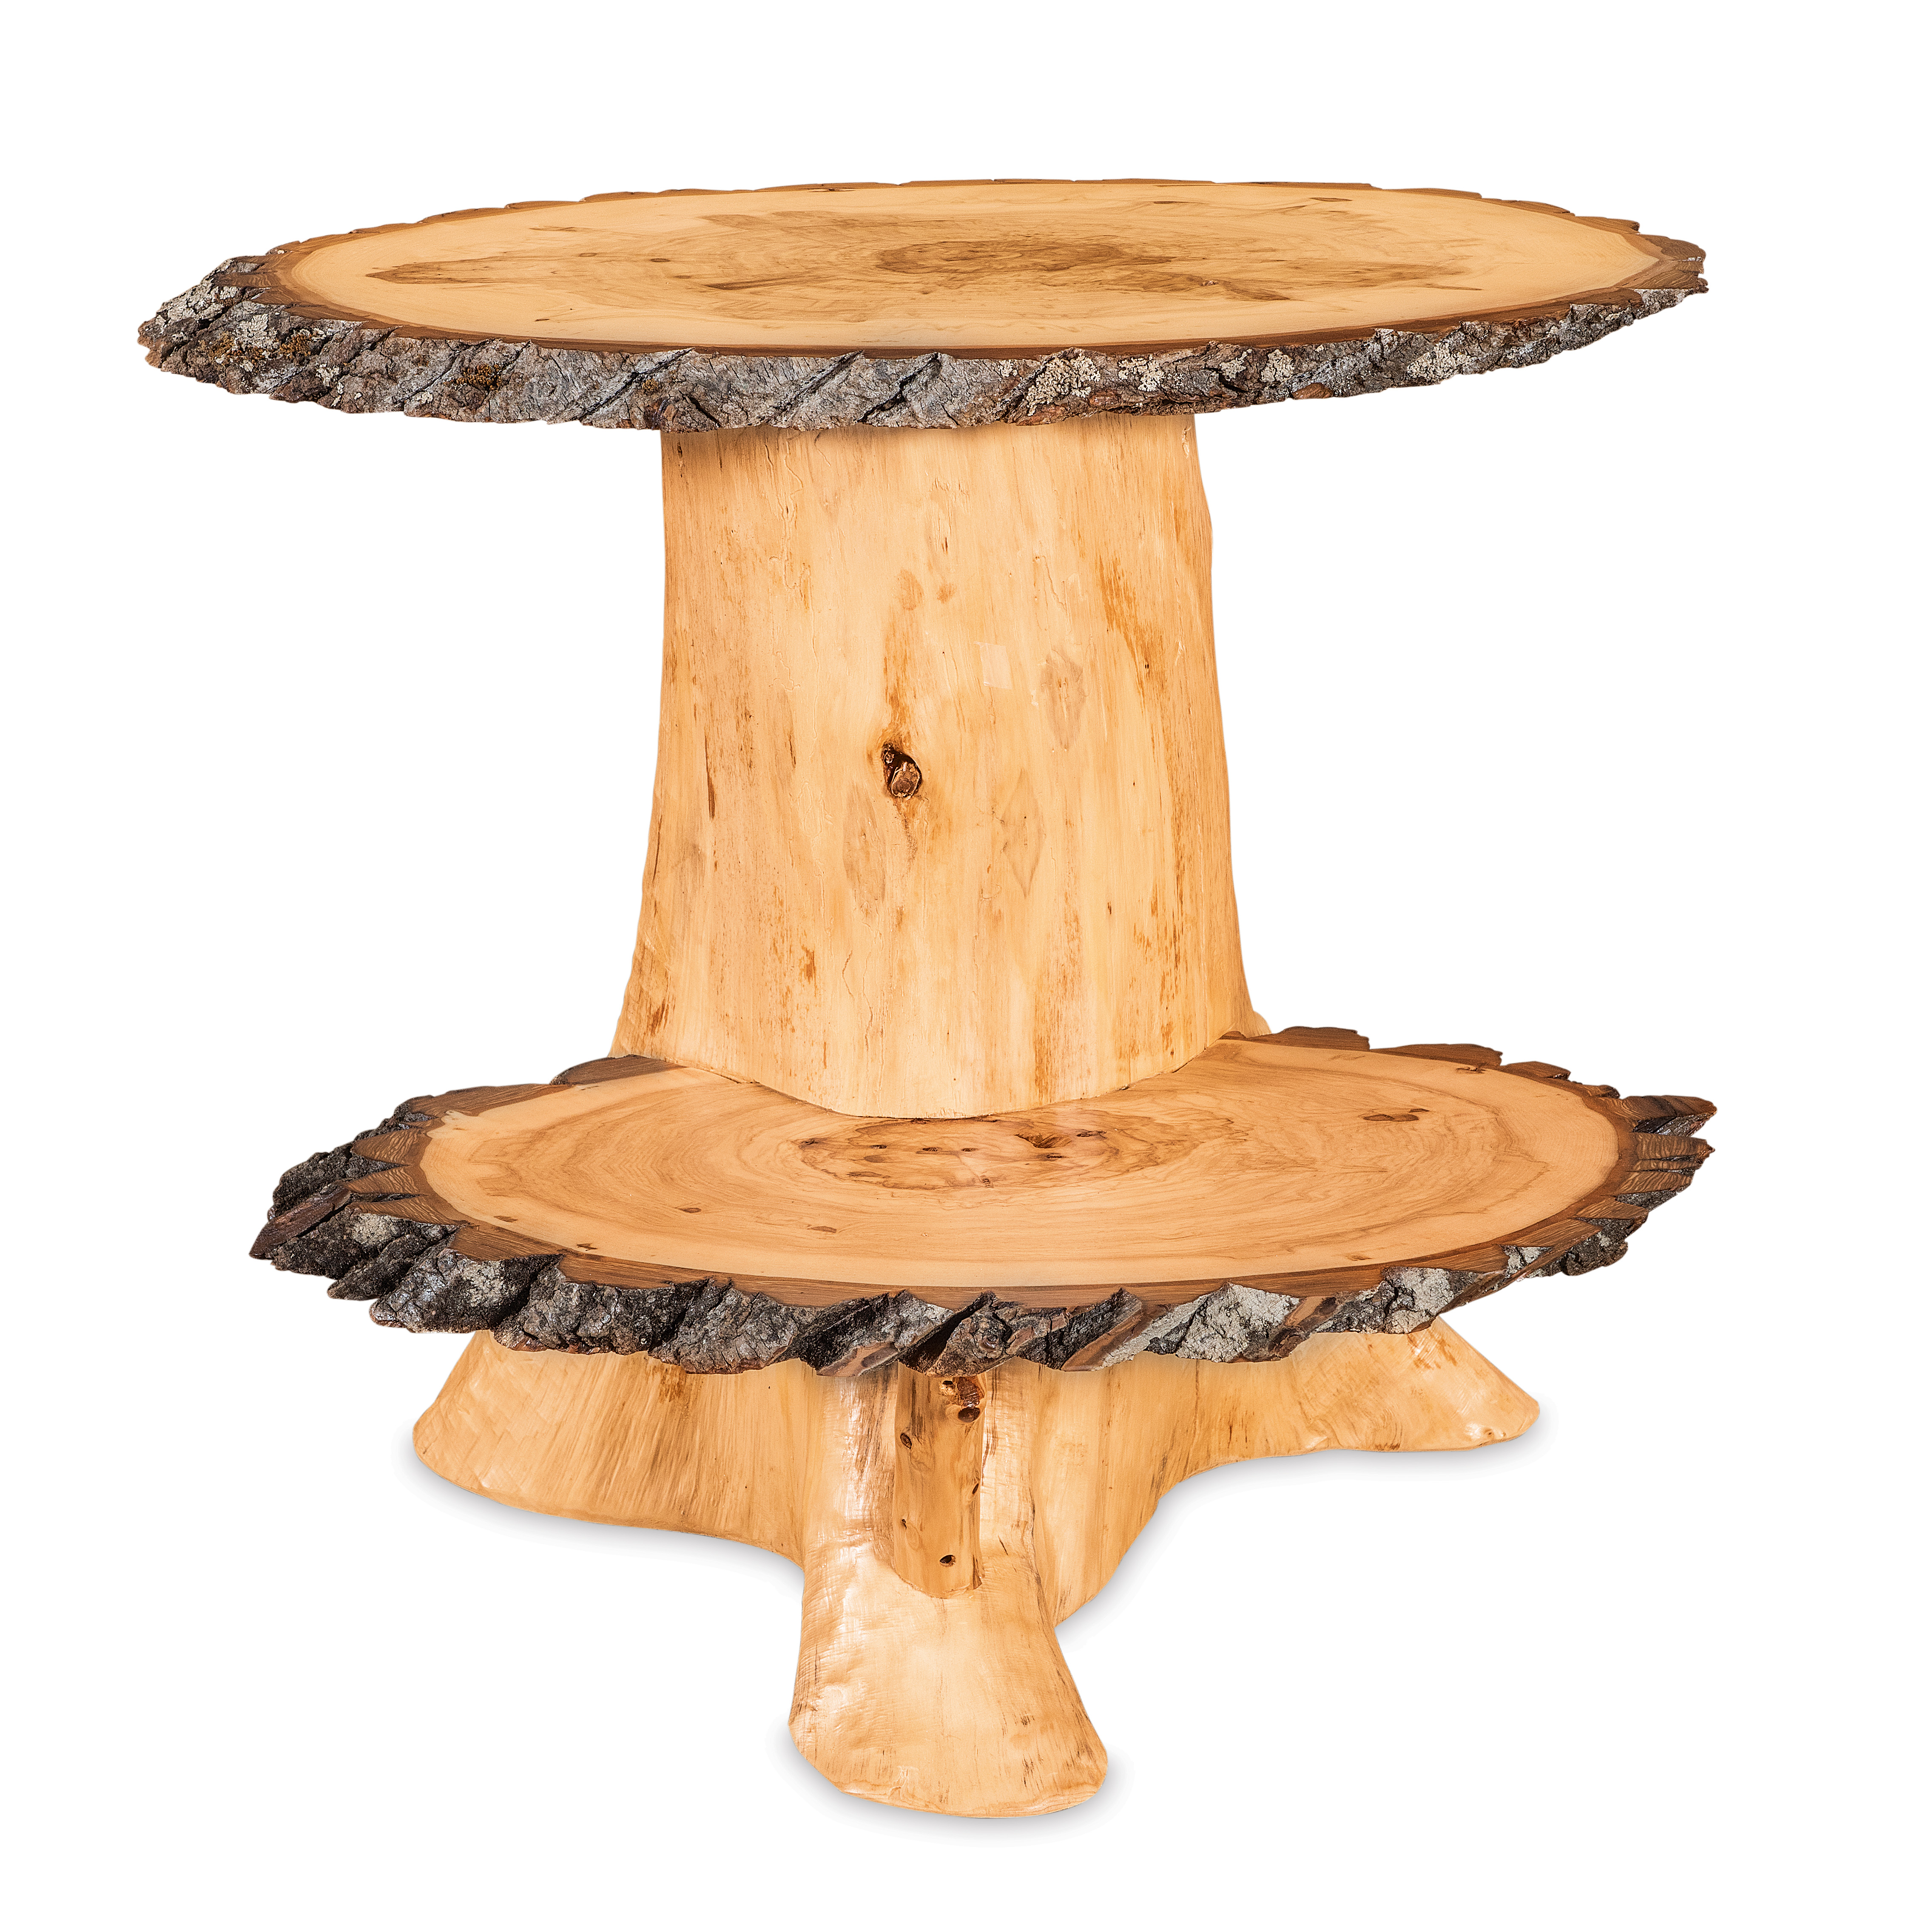 2 Slab Stump and Table Product